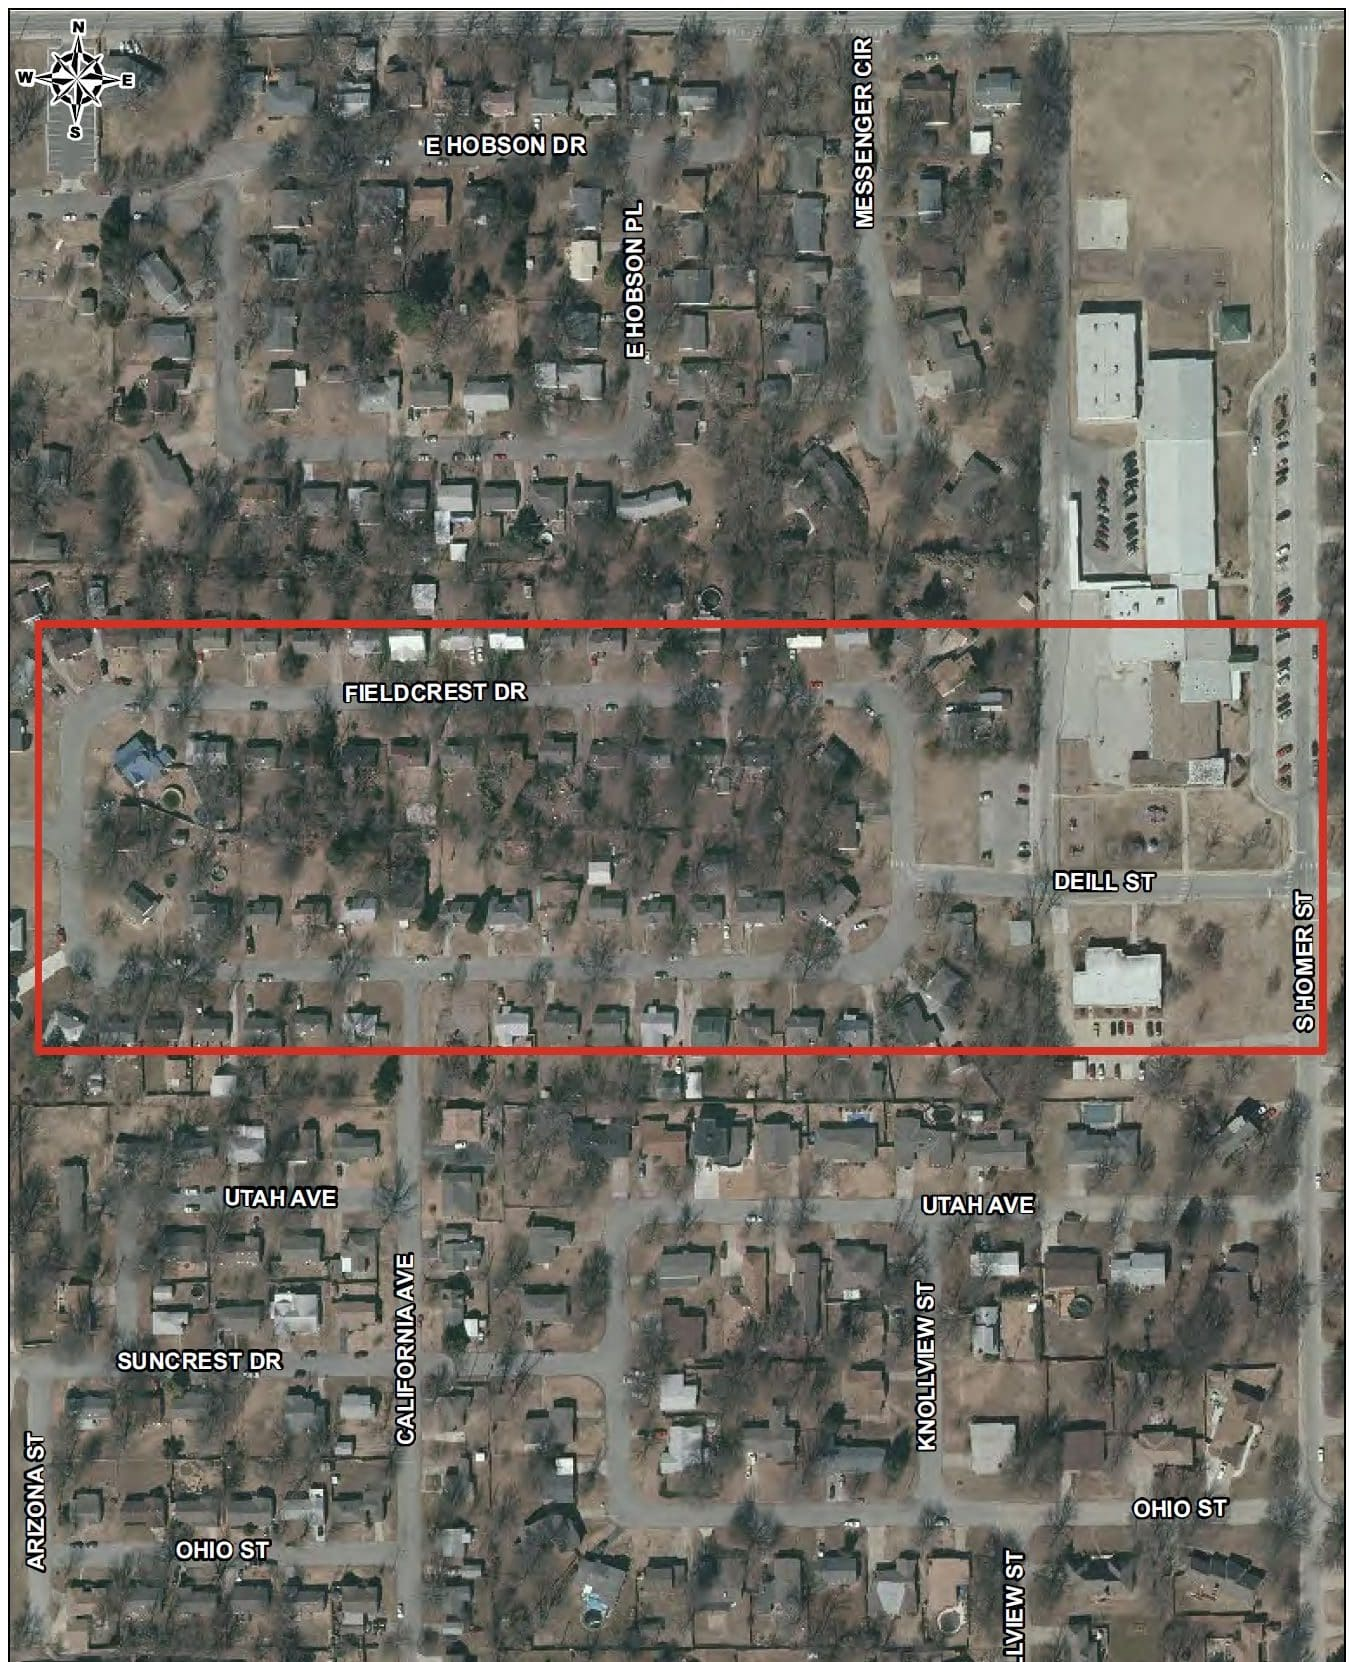 Water Main Replacement Project Begins April 17, 2018